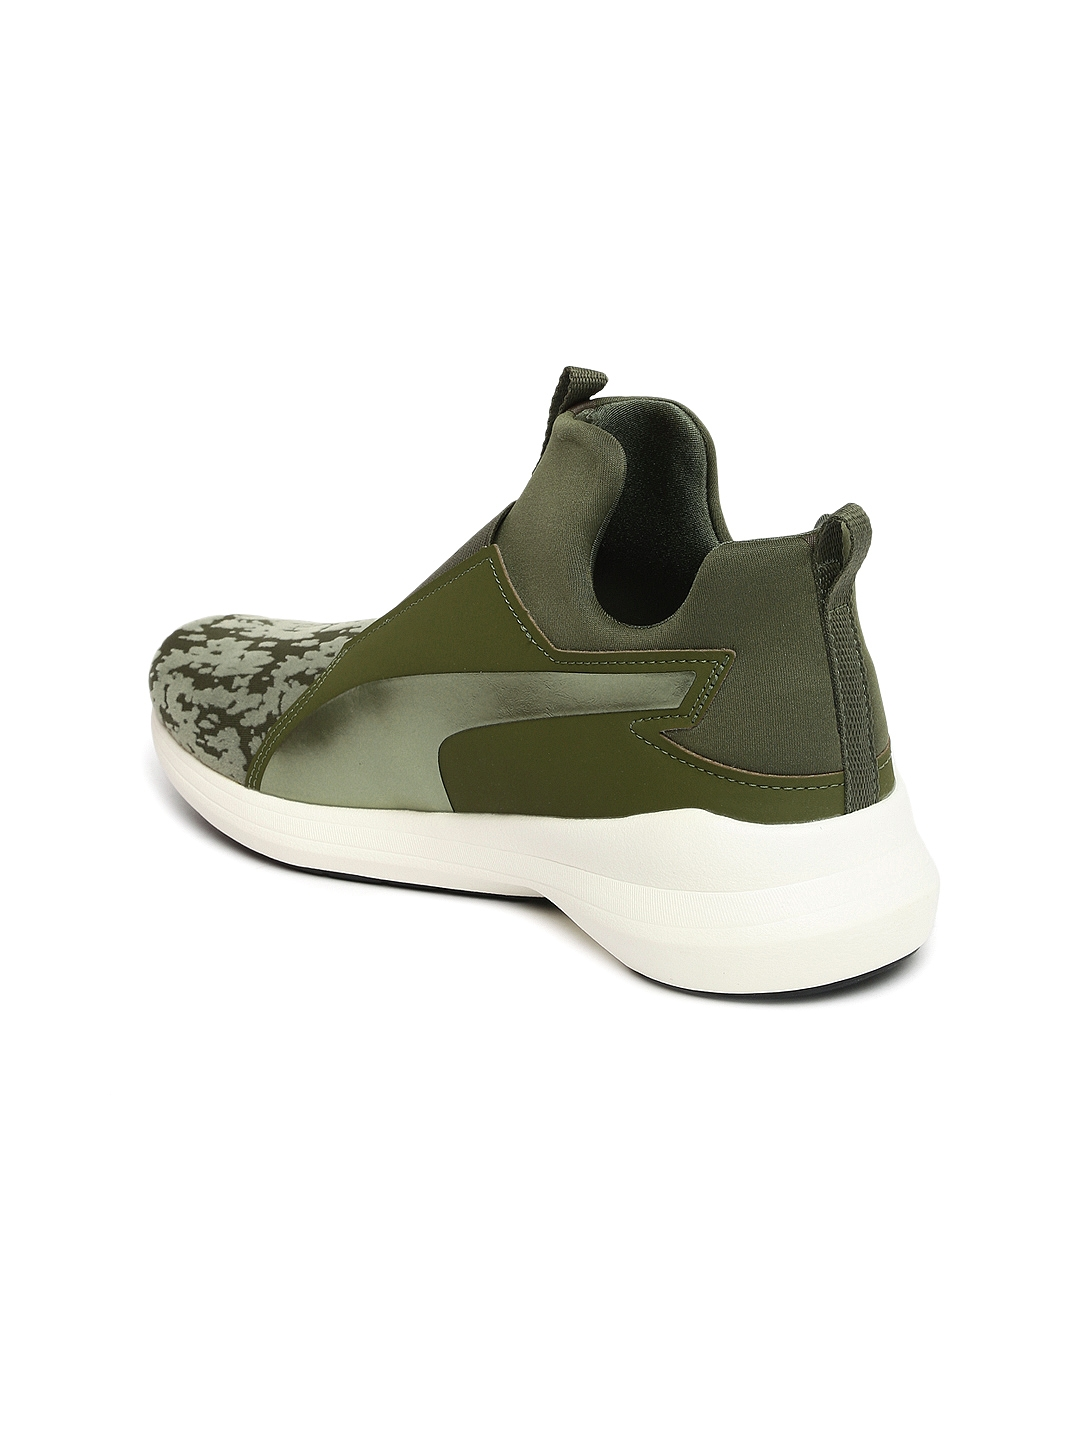 af9324a3921bb4 Buy Puma Women Olive Green Solid Mesh Mid Top Slip On Sneakers ...